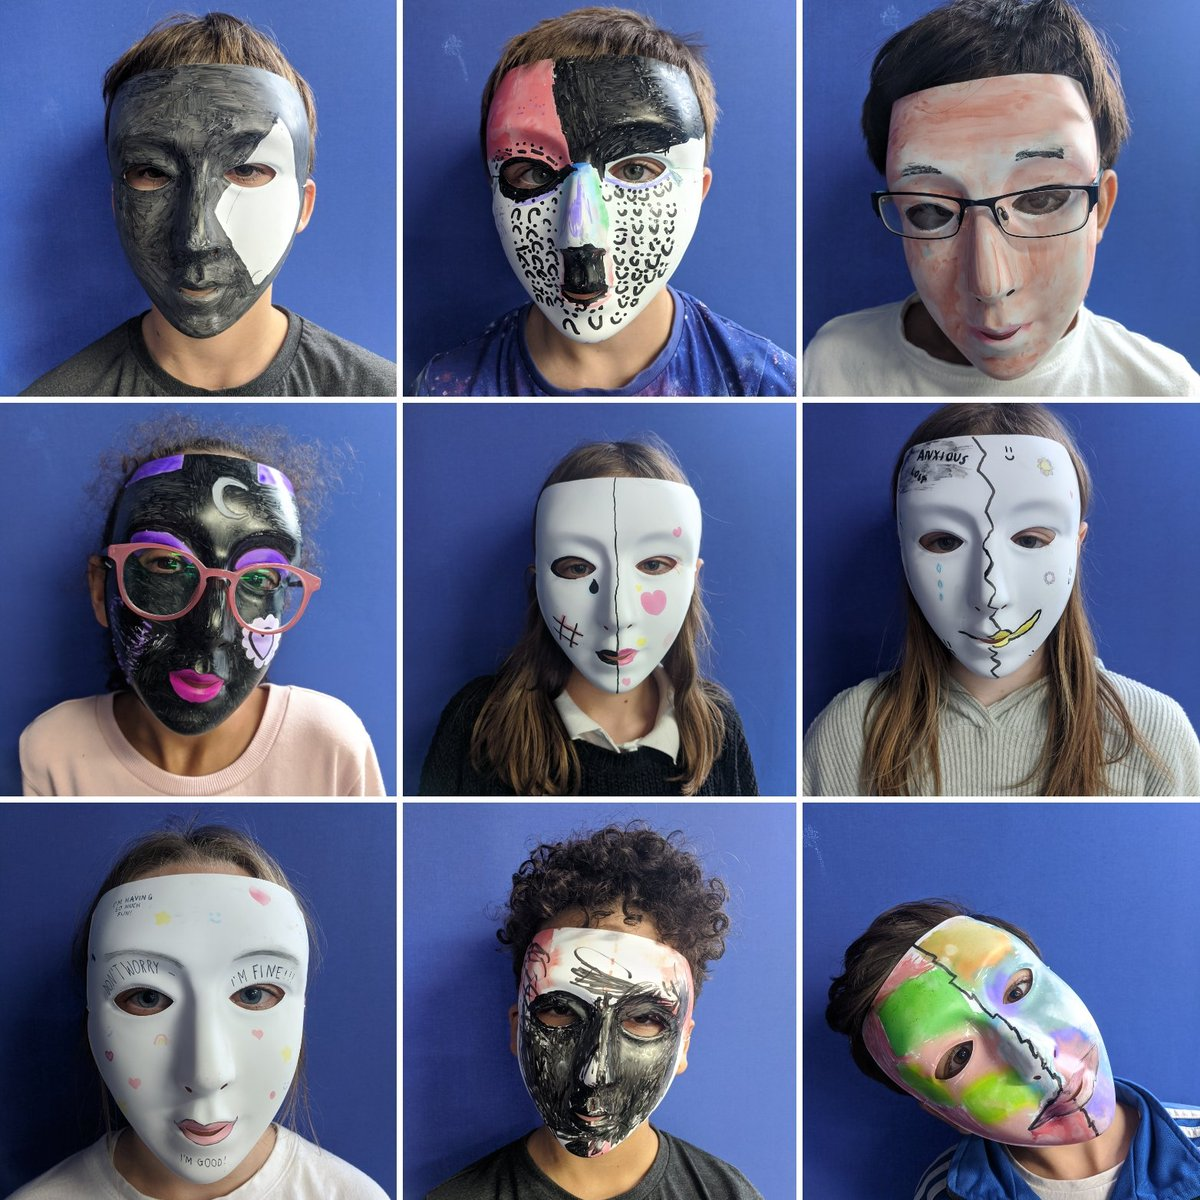 Our finished masks to celebrate #MentalHealthDay - thinking about the spectrum of emotions we experience. #PSHE #MentalHealthMatters #mask @FairlawnPrimary